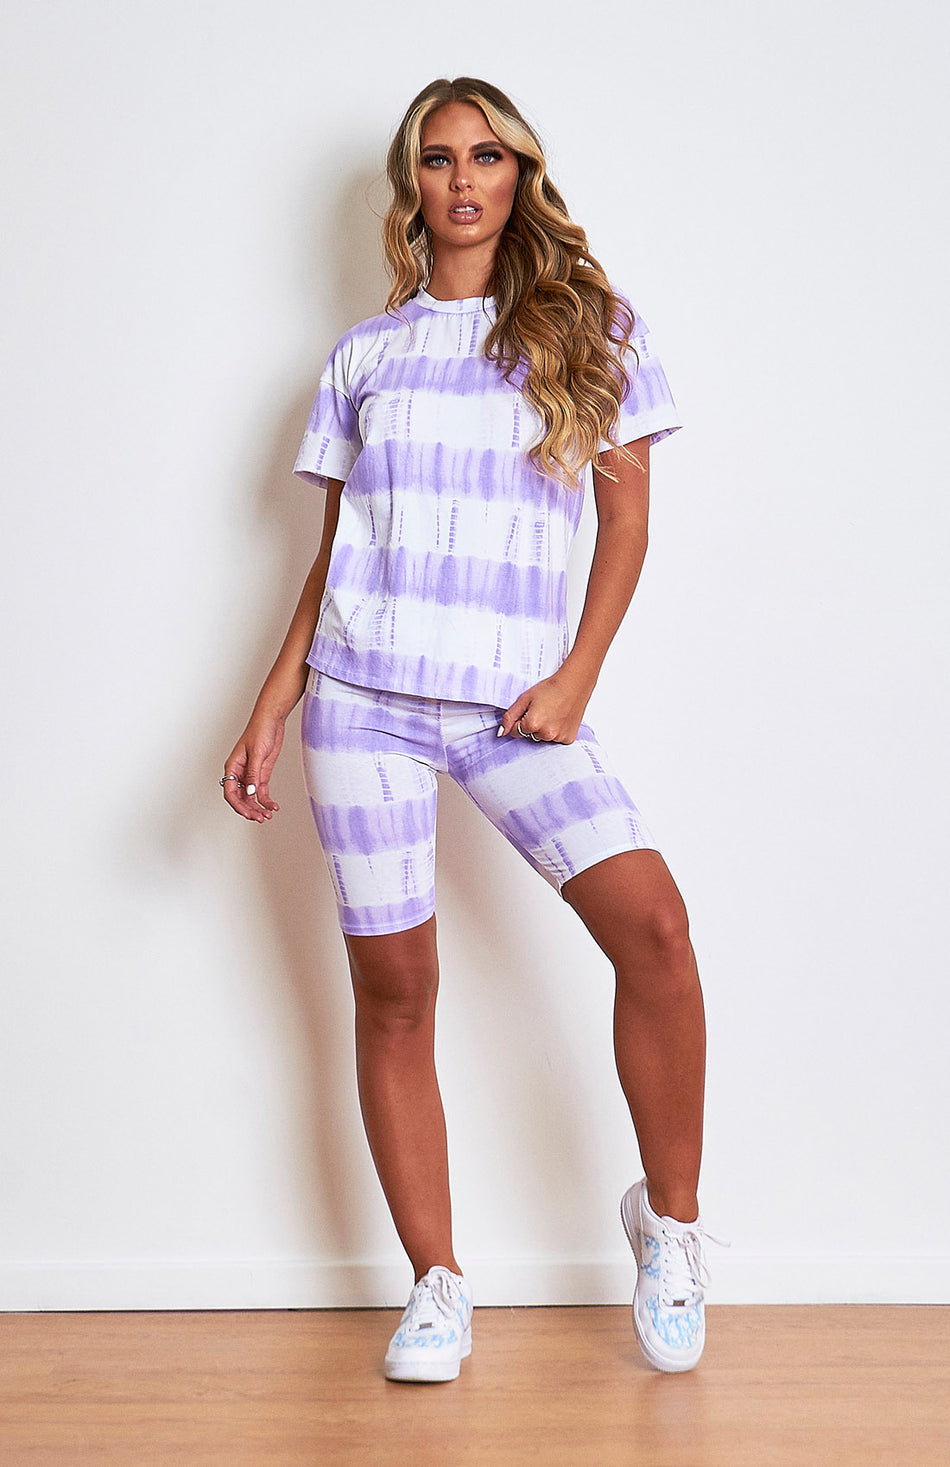 Lilac Tie Dye T.shirt en Cycle short set